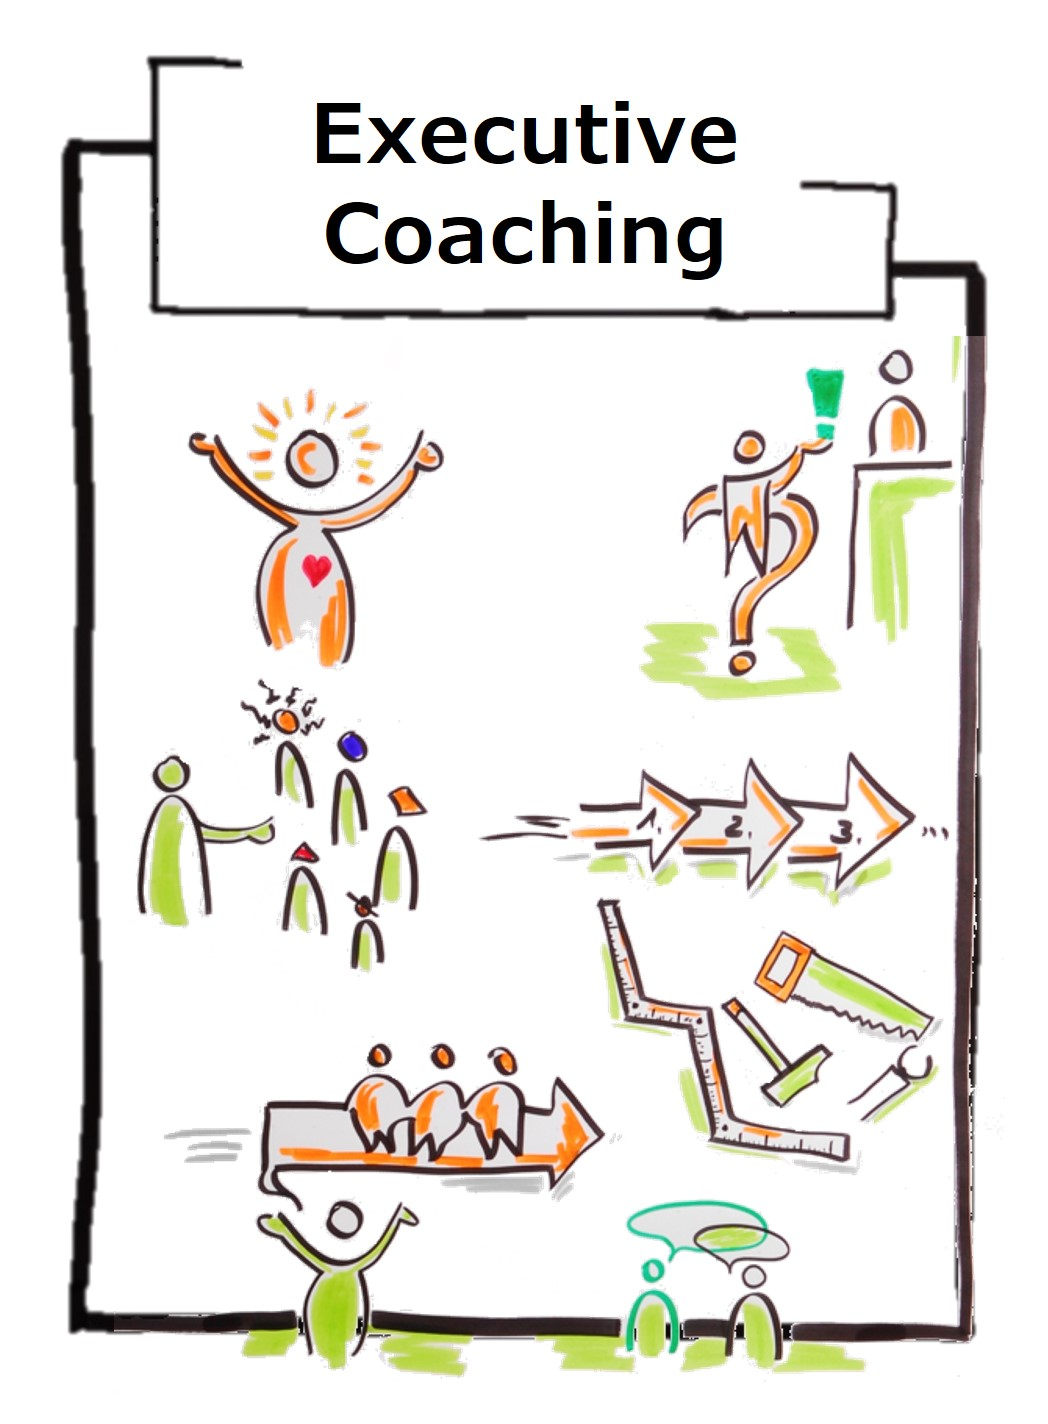 Leadership coaching specifically addresses the requirements and challenges of executives